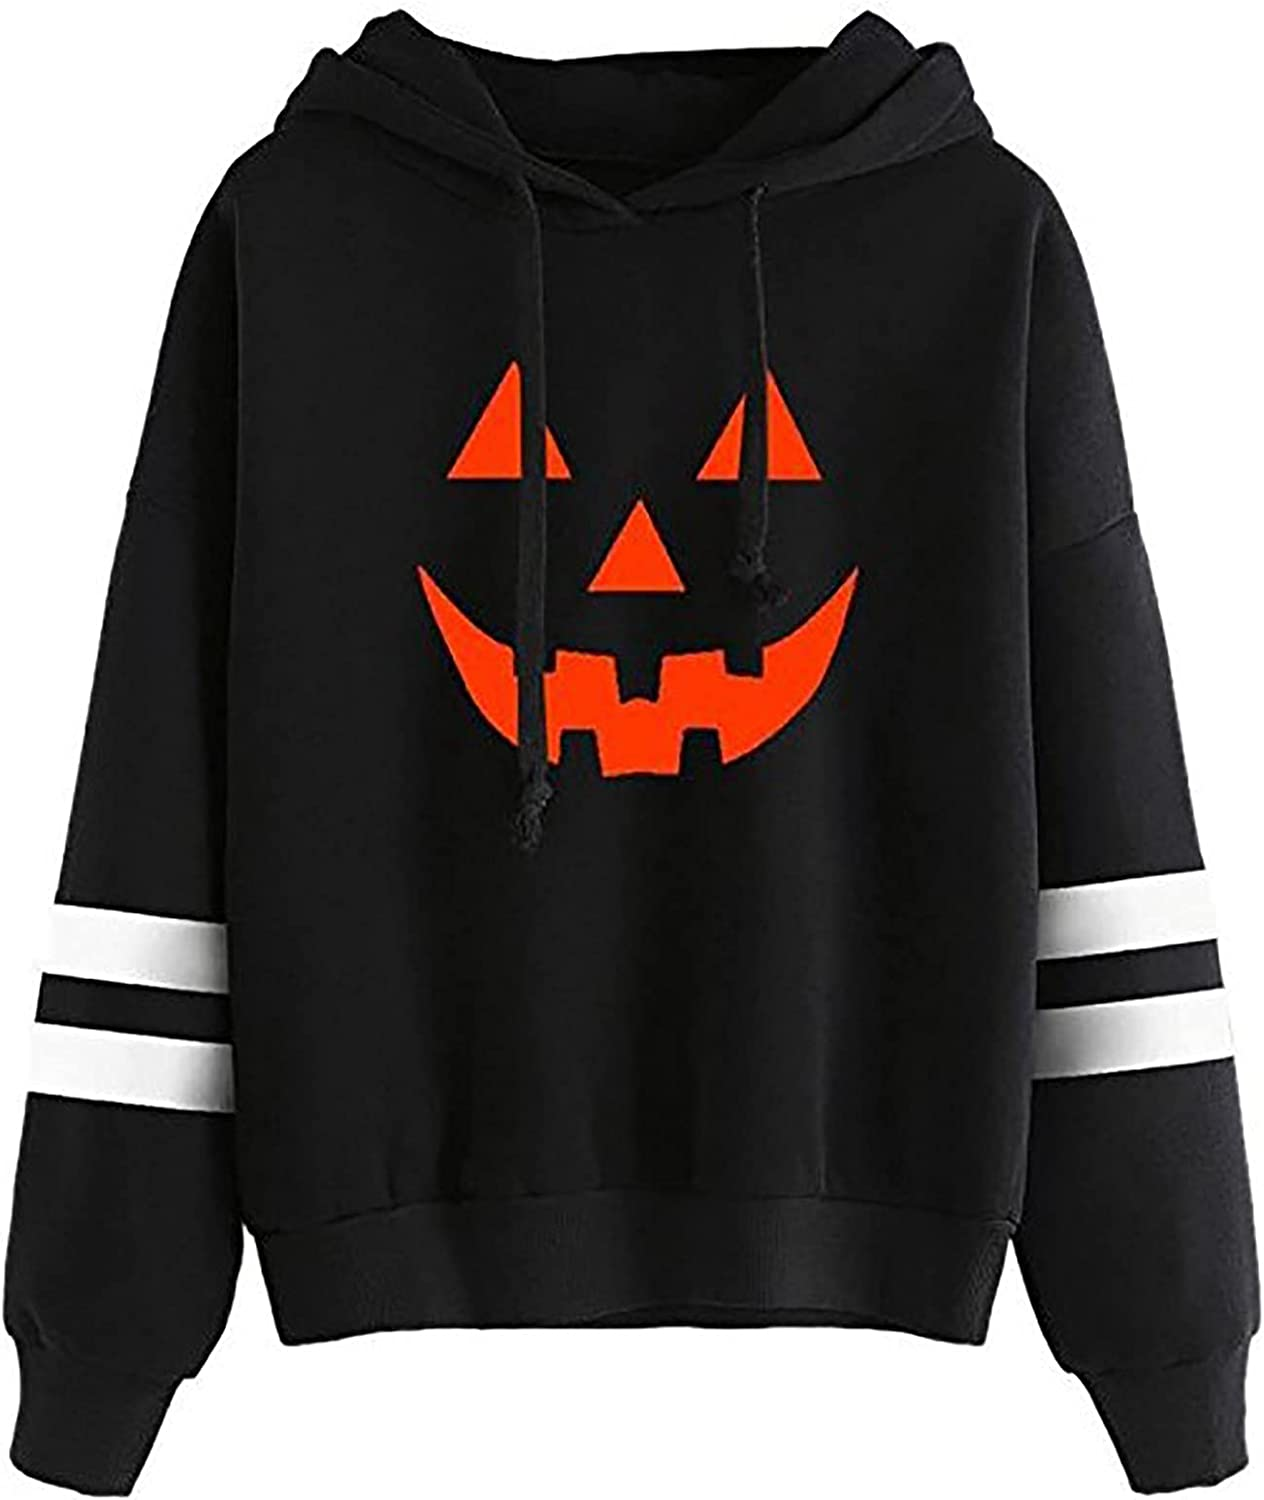 Hooded Blouse for Womens Funny Halloween Pumpkin Face Graphic Sweatshirt Color Block Drawstring Tunic Pullover Tops